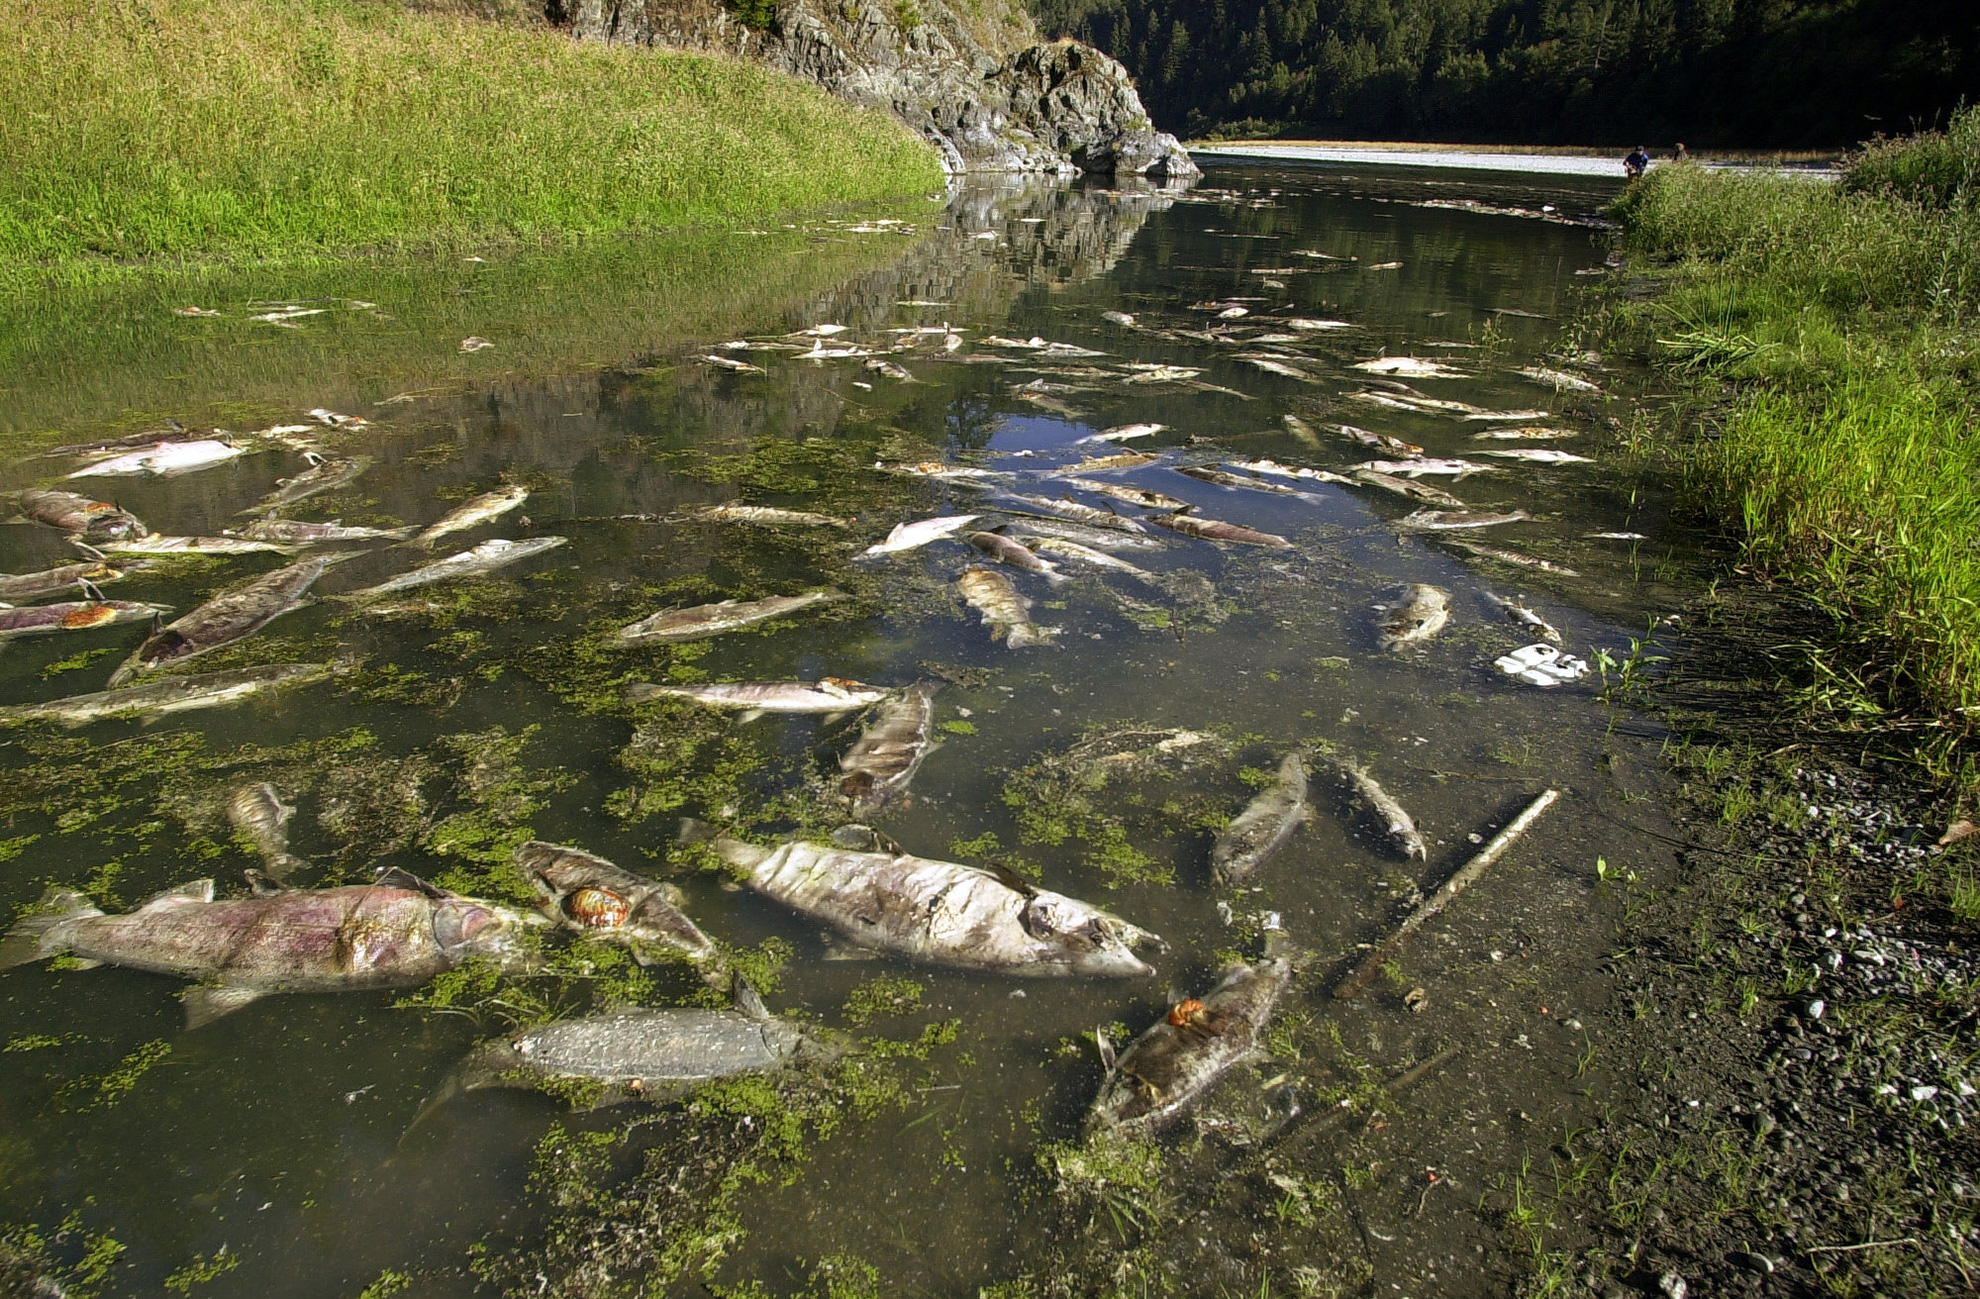 Dead salmon along the Klamath River near Klamath, Calif., after a disease outbreak that killed an estimated 60,000 salmon on Oct. 1, 2002.